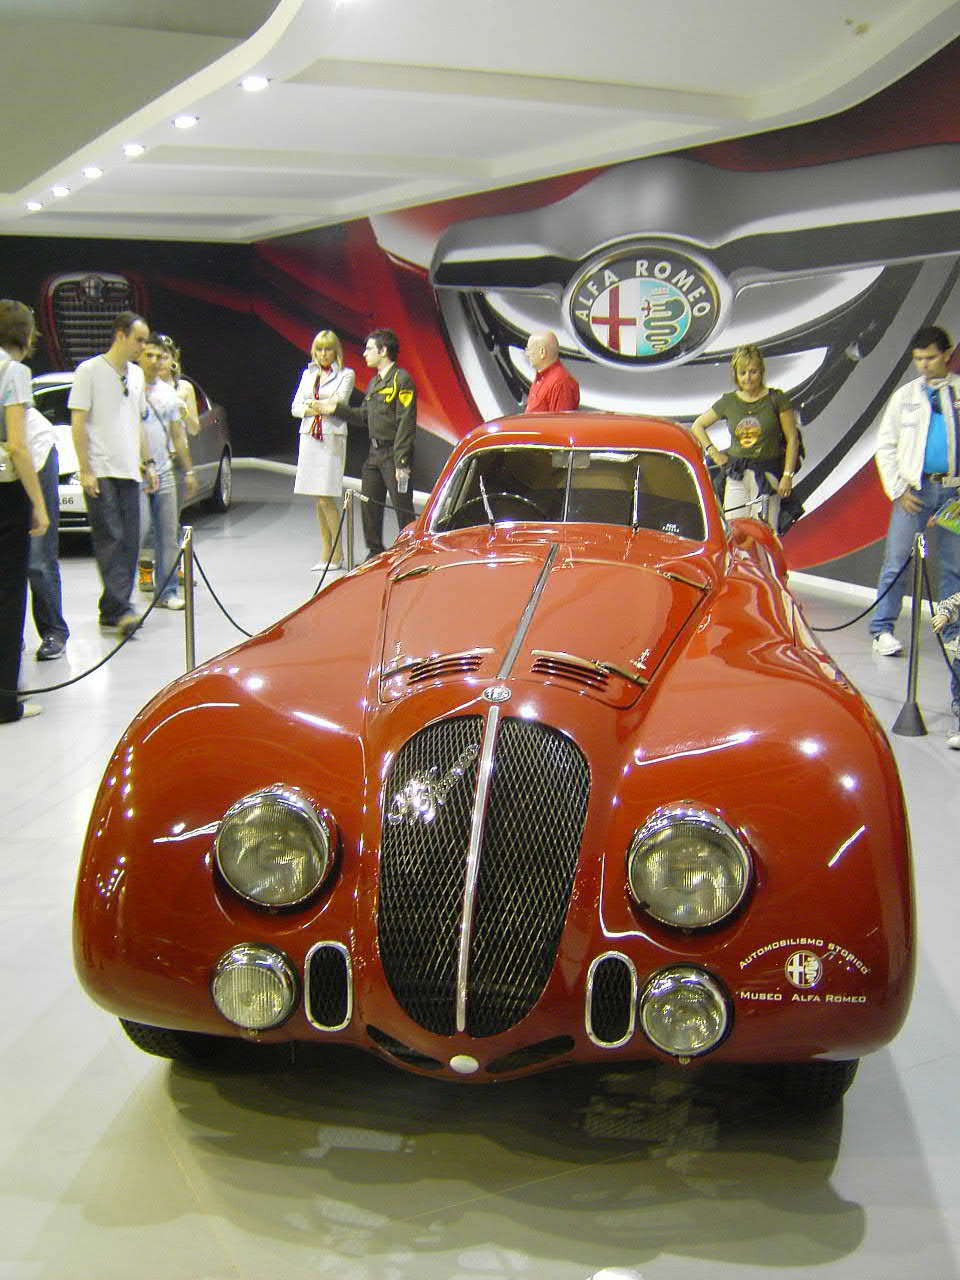 http://upload.wikimedia.org/wikipedia/commons/e/ea/Alfa_Romeo_8C_2900B_Lemans.jpg